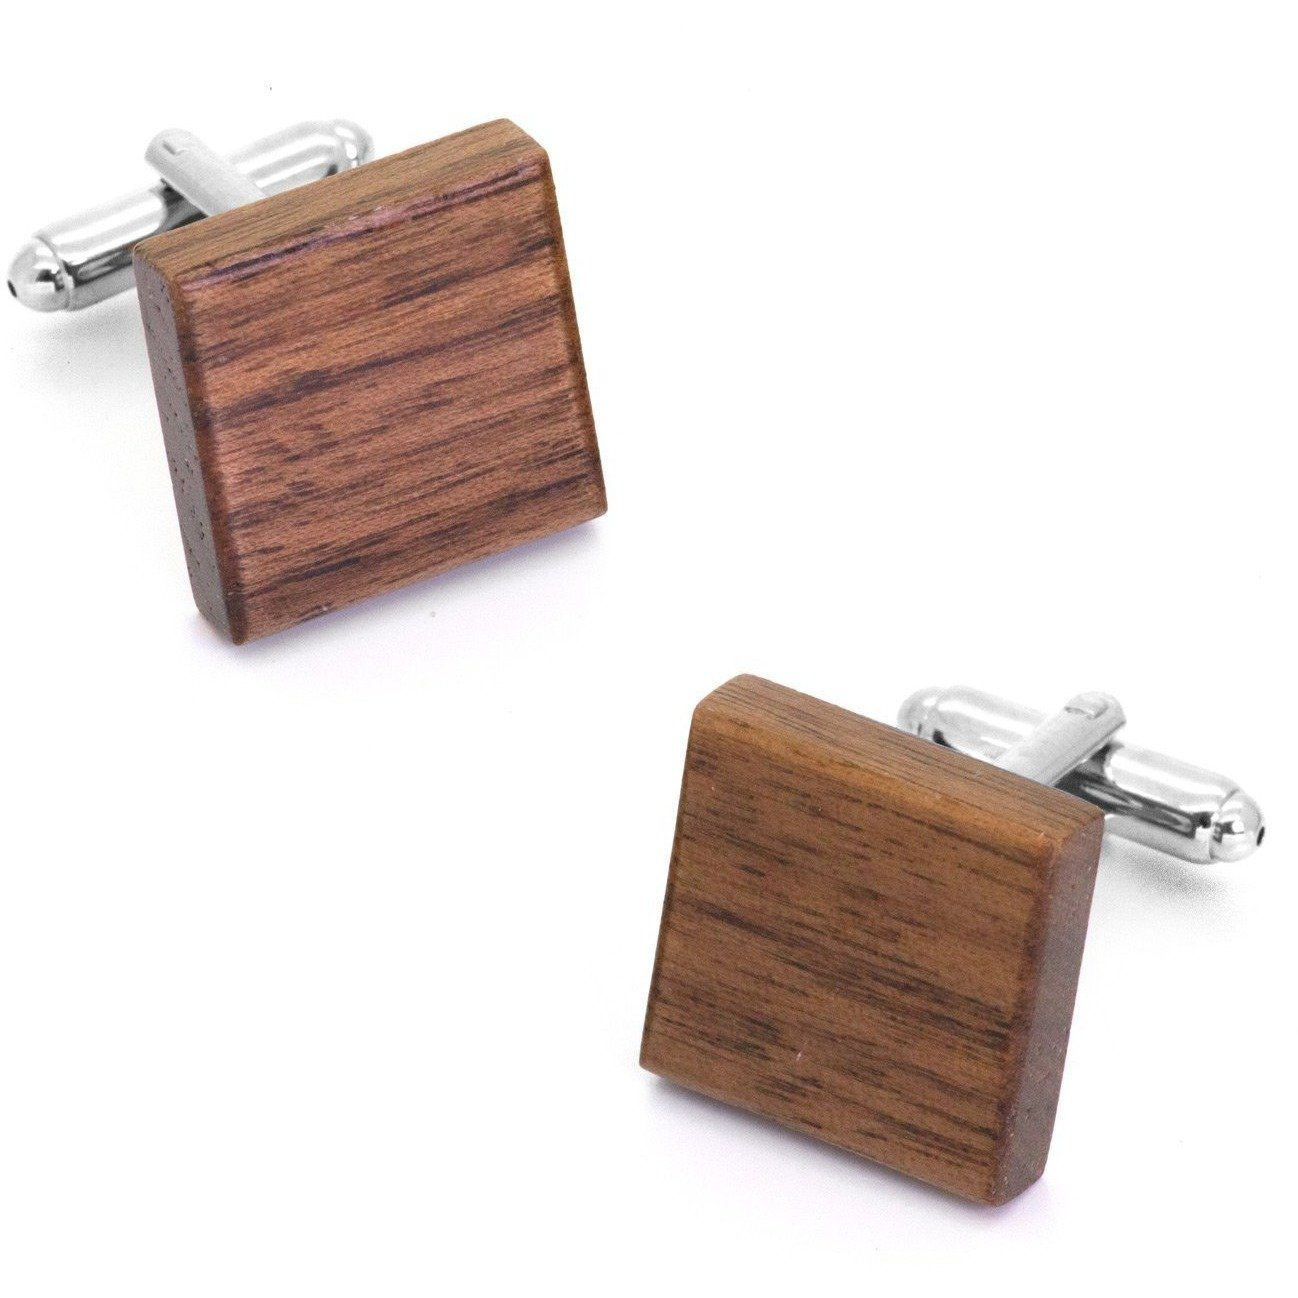 Square Natural Wood Cufflinks Classic & Modern Cufflinks Clinks Australia Square Natural Wood Cufflinks